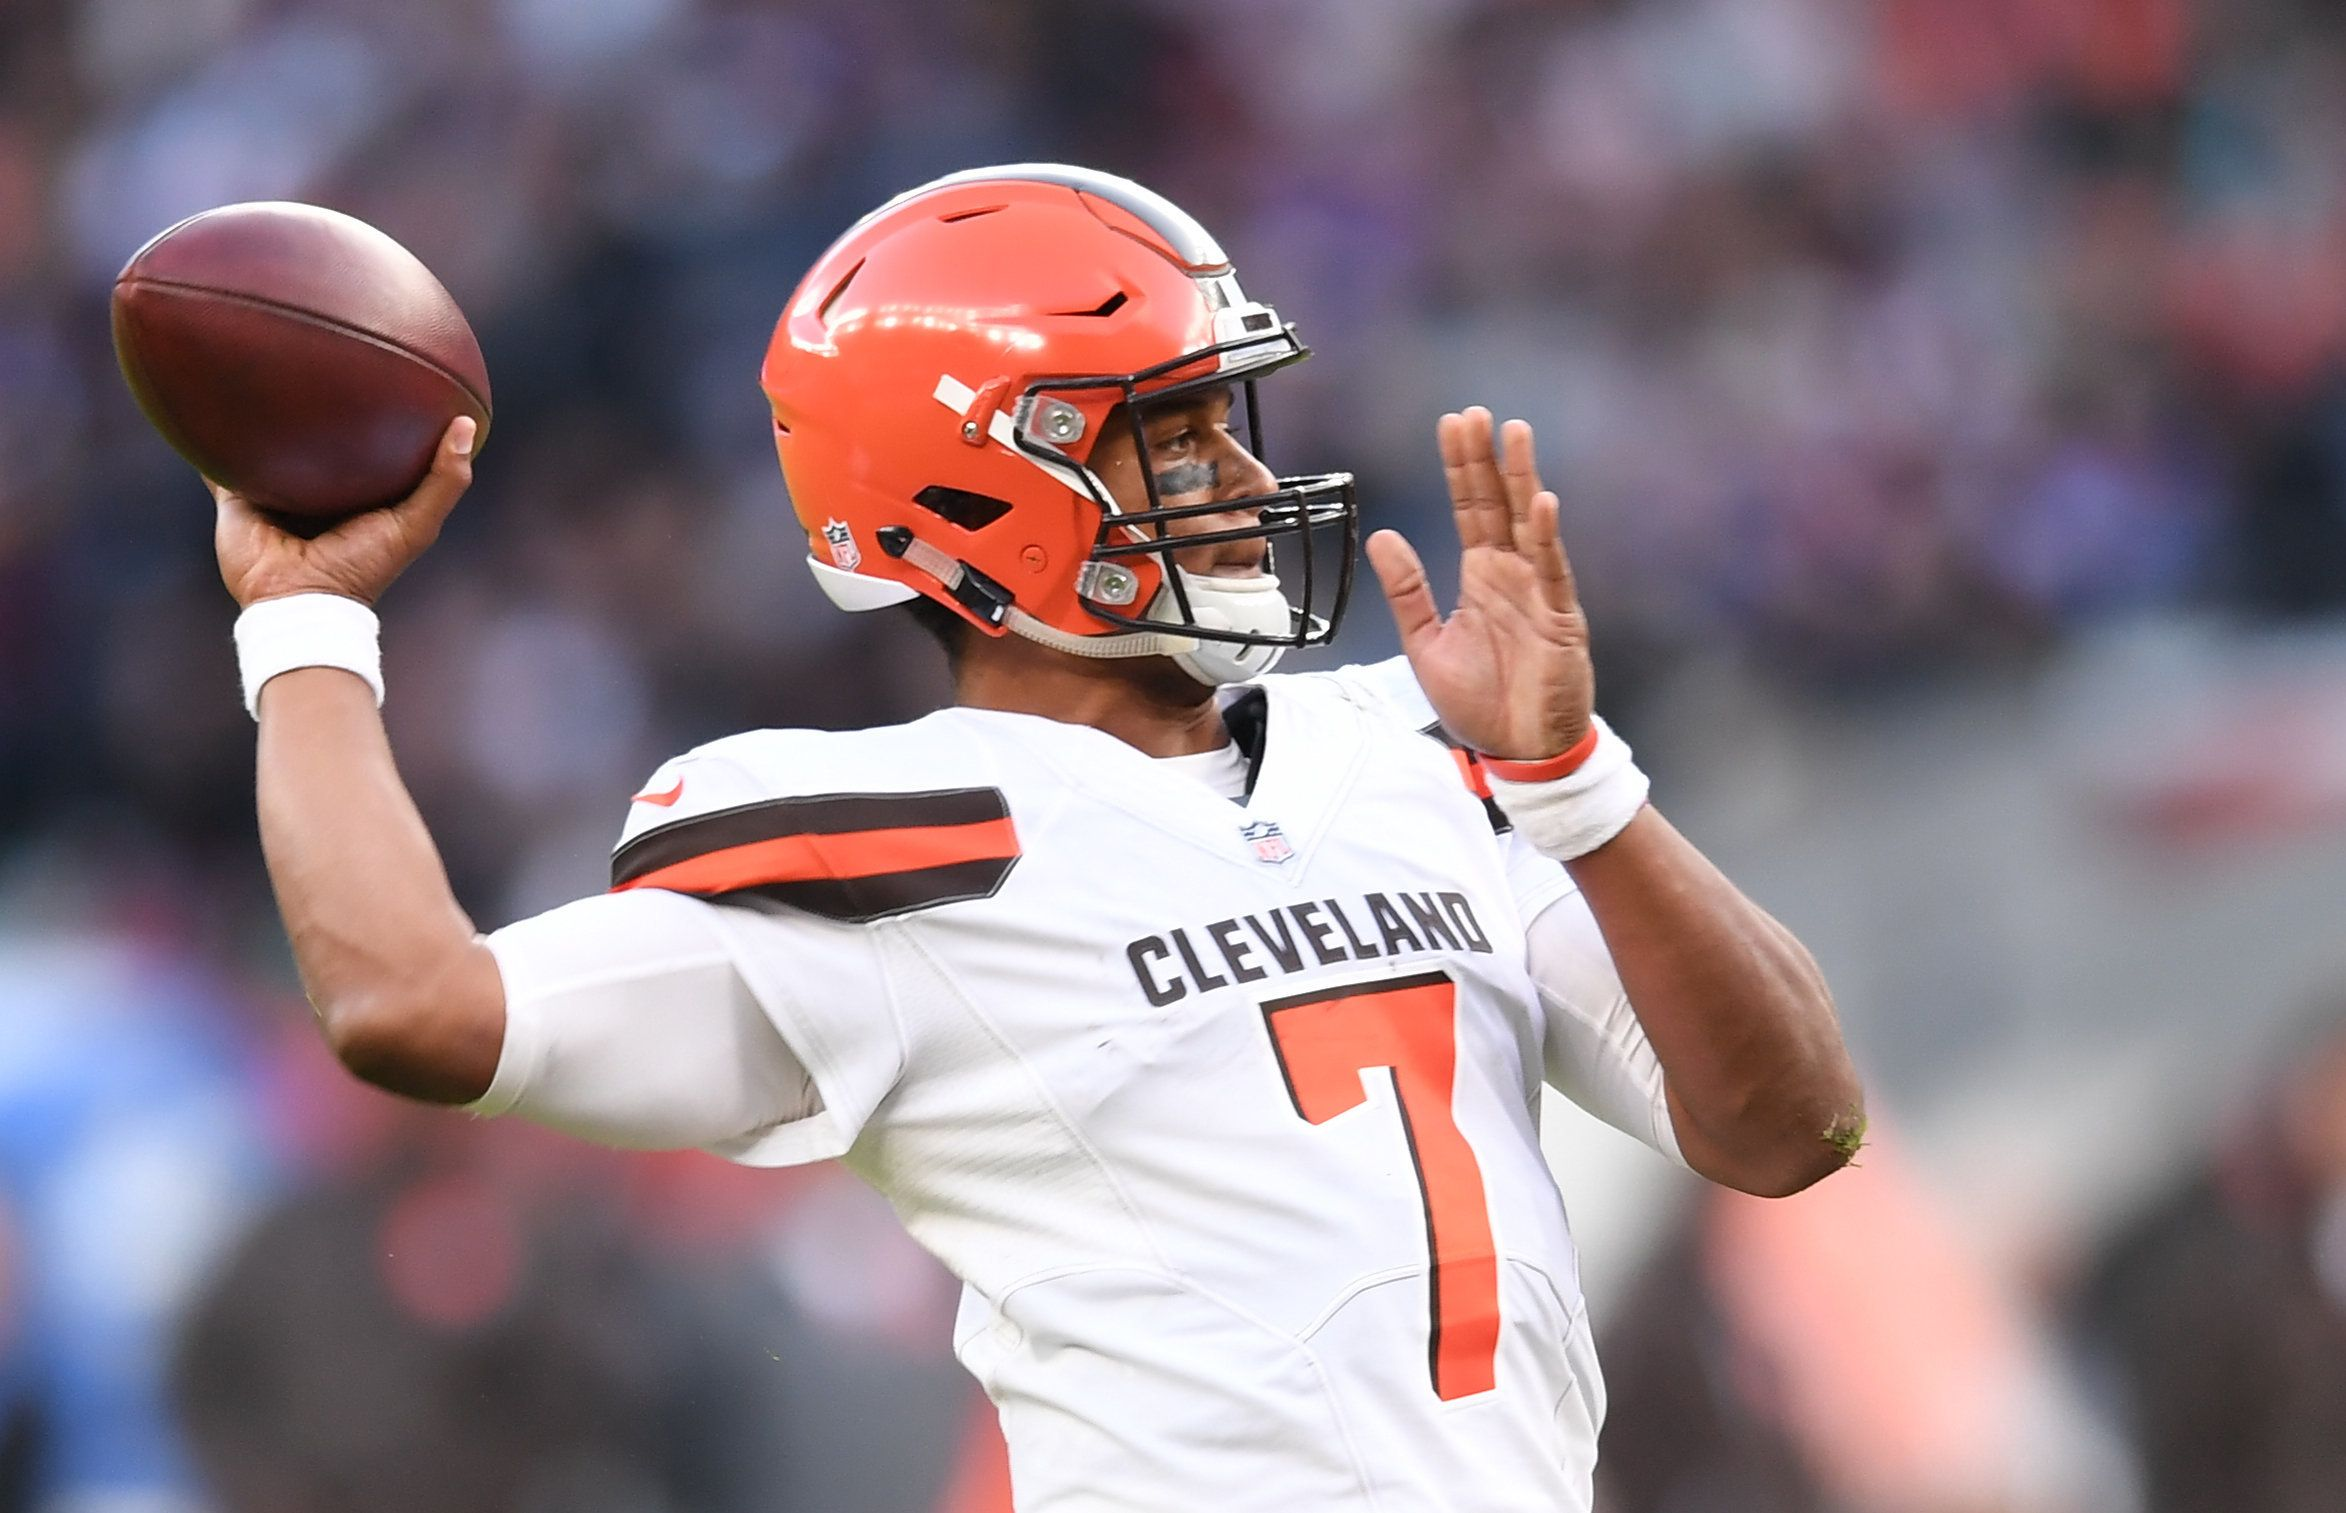 29th October 2017, Twickenham, London, England; NFL International Series, game 4, Minnesota Vikings versus Cleveland Browns;    DeShone Kizer of the Cleveland Browns prepares to pass the ball  (Photo by Simon West/Action Plus via Getty Images)